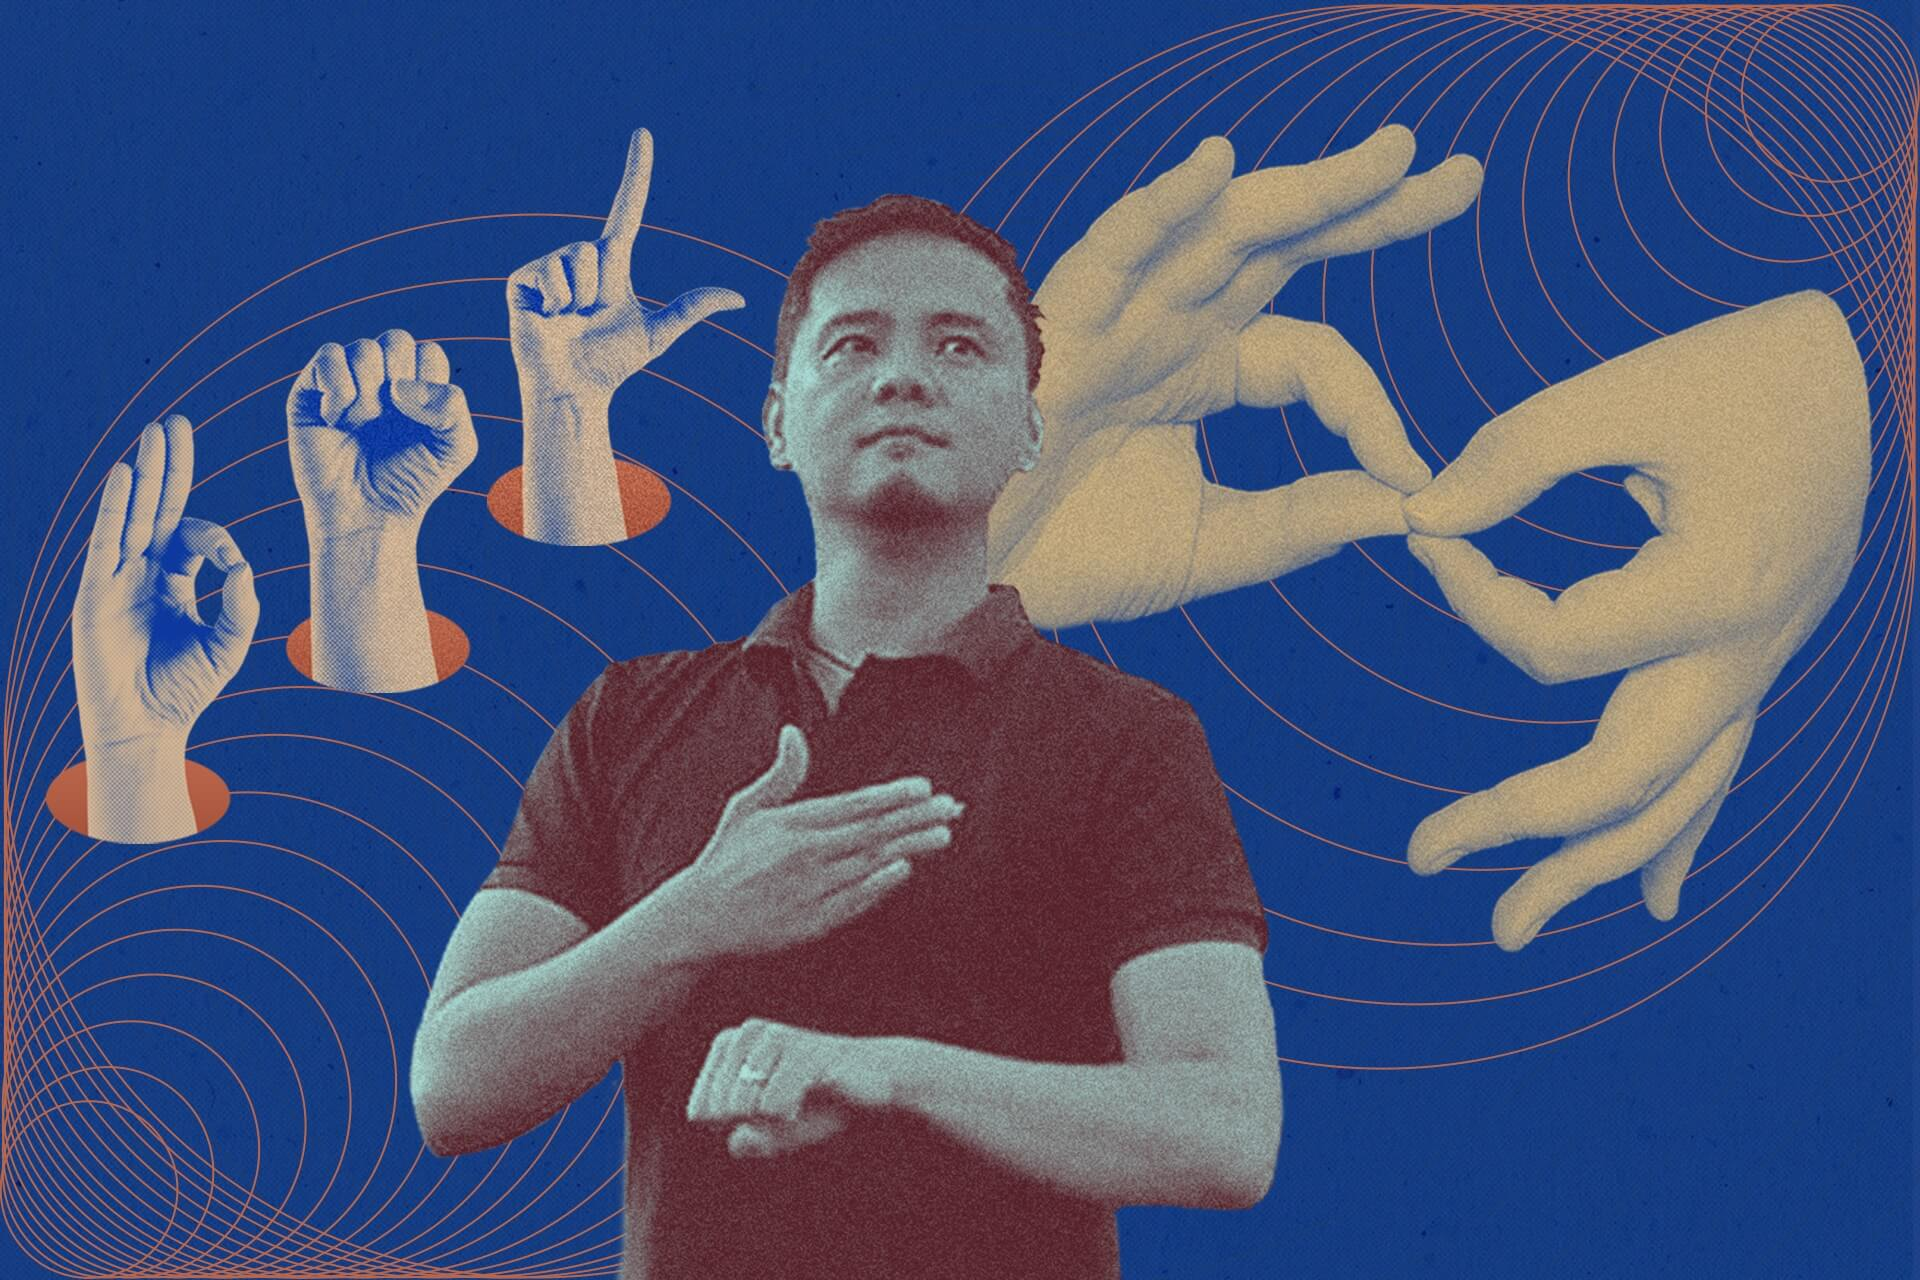 Filipino Sign Language has existed for hundreds of years. Now, thanks to the local Deaf community, it's finally being recognized.